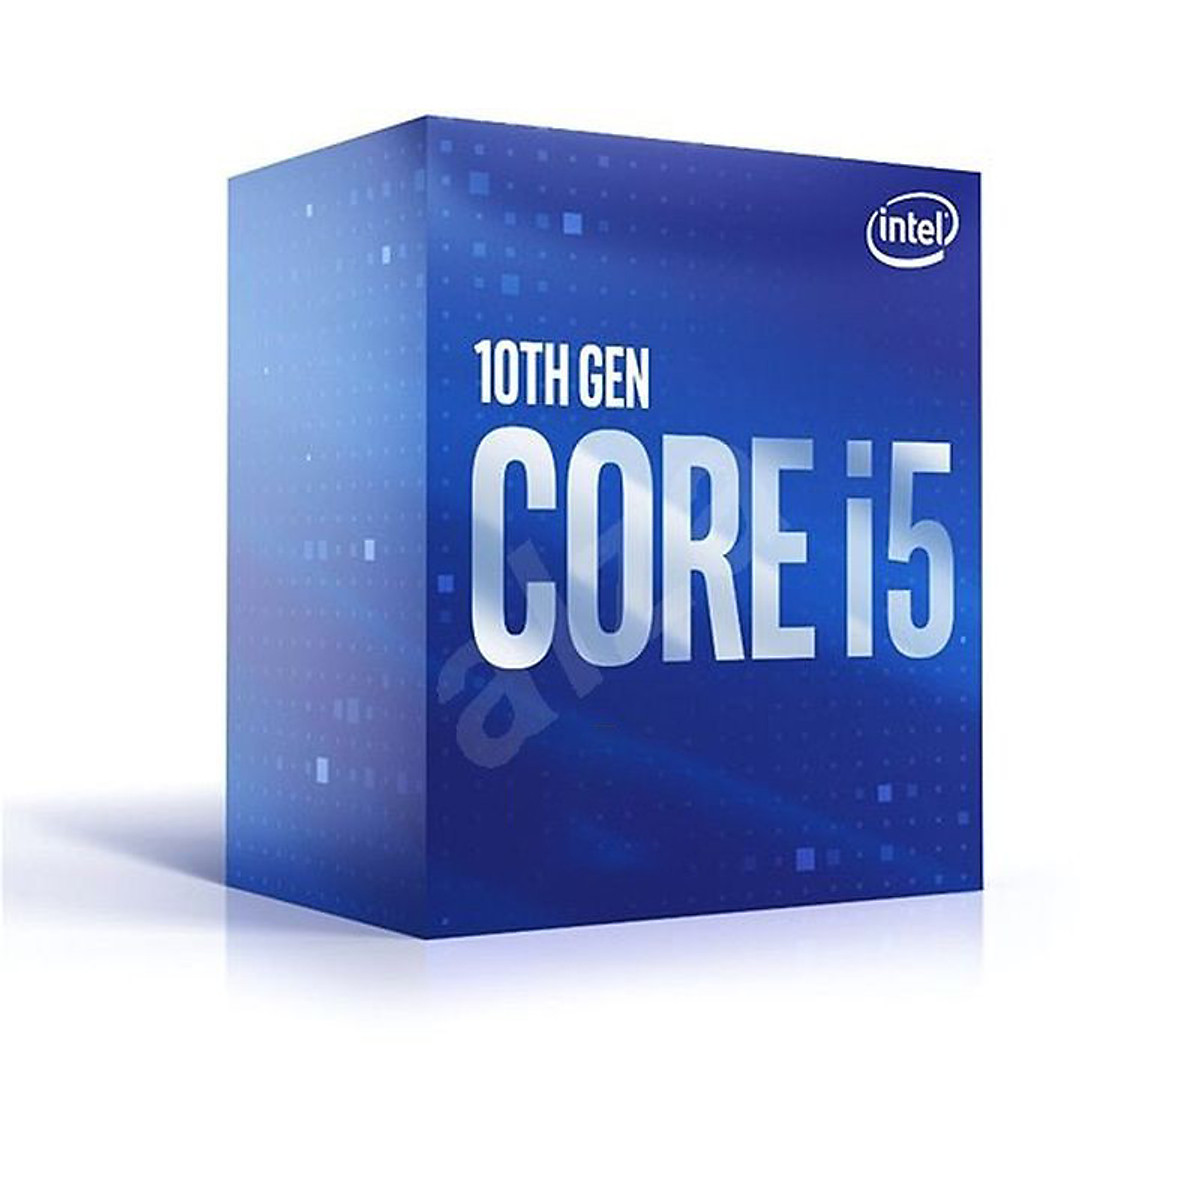 CPU Intel Core i5-10400 6 Cores 12 Threads Up to 4.30 Ghz – 10th Gen LGA1200 Box – Hàng Chính Hãng